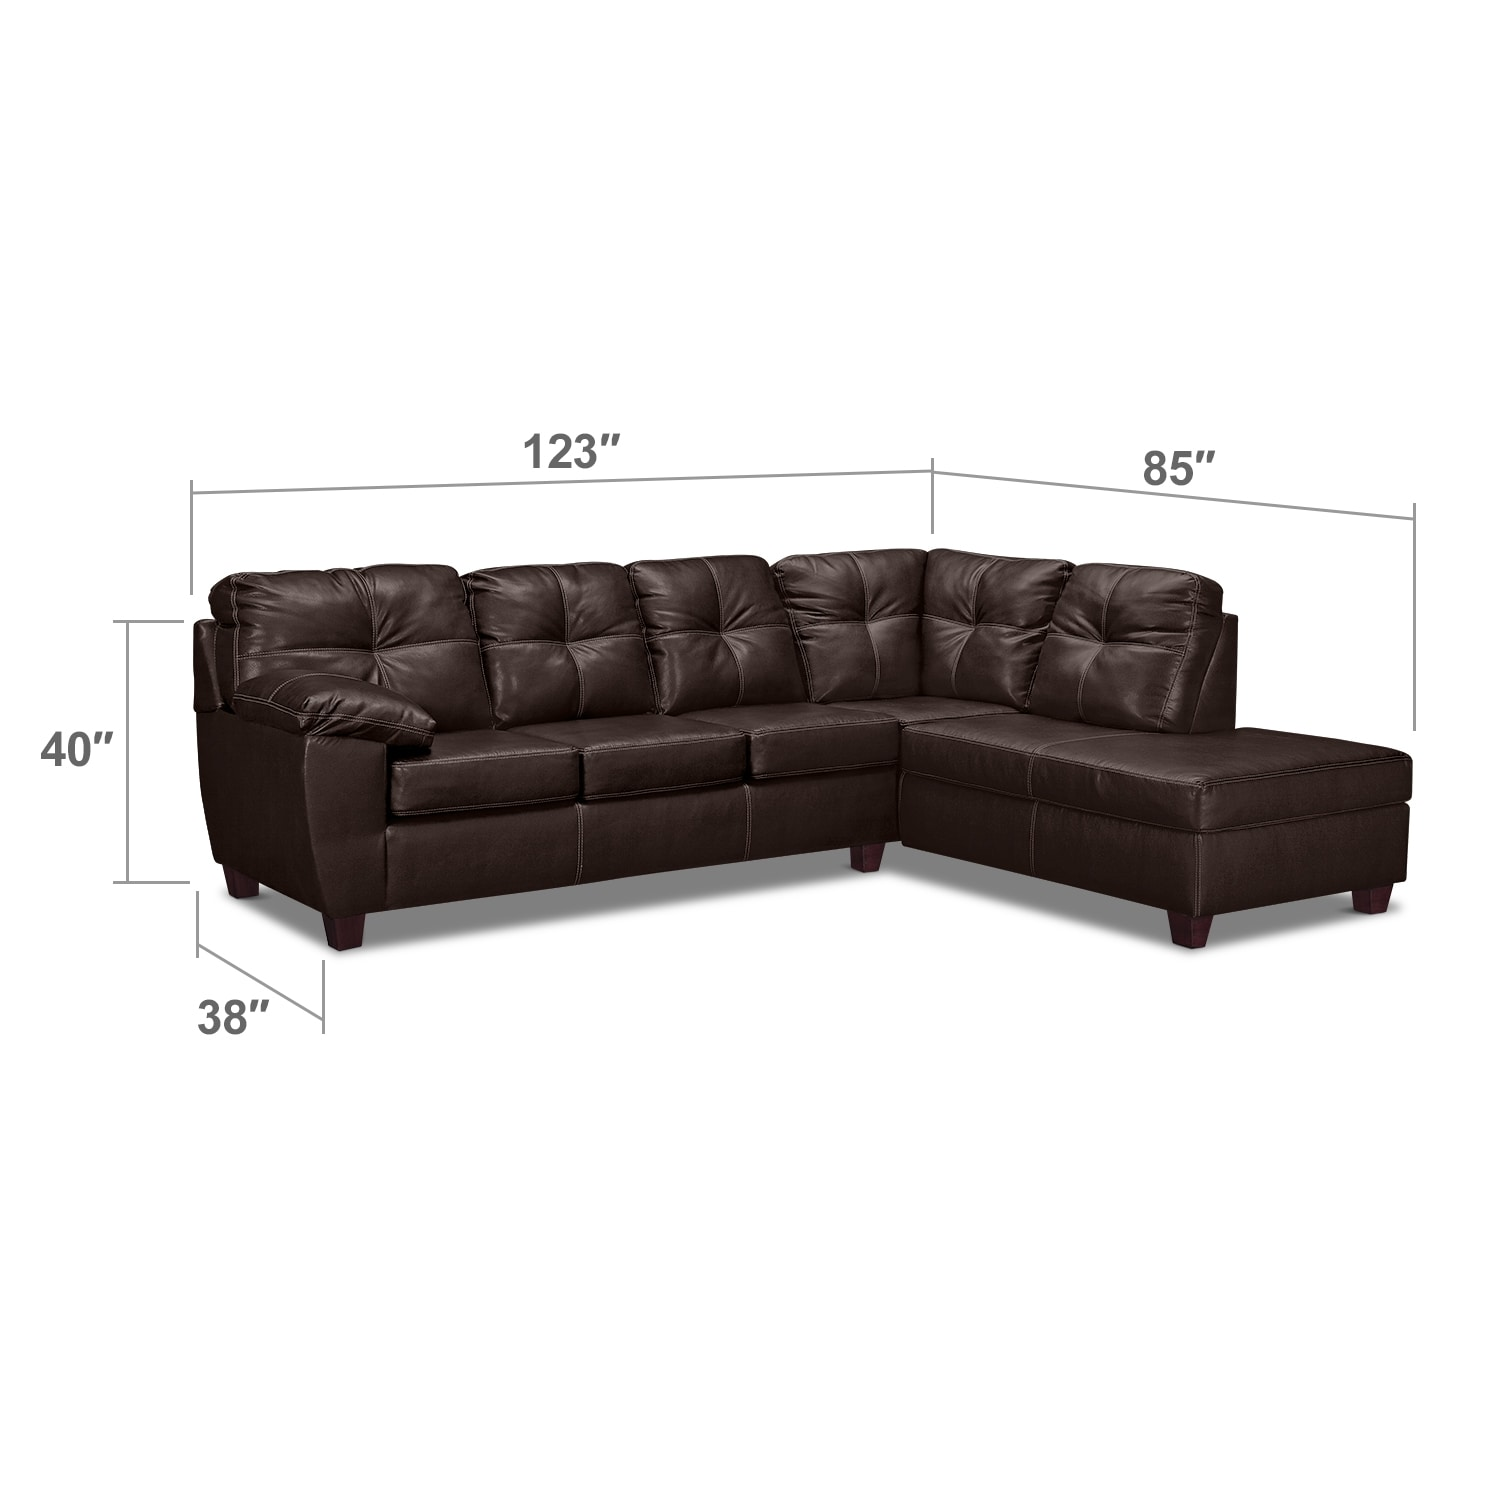 Living Room Furniture - Rialto Brown 2-Pc. Sectional with Right-Facing Chaise